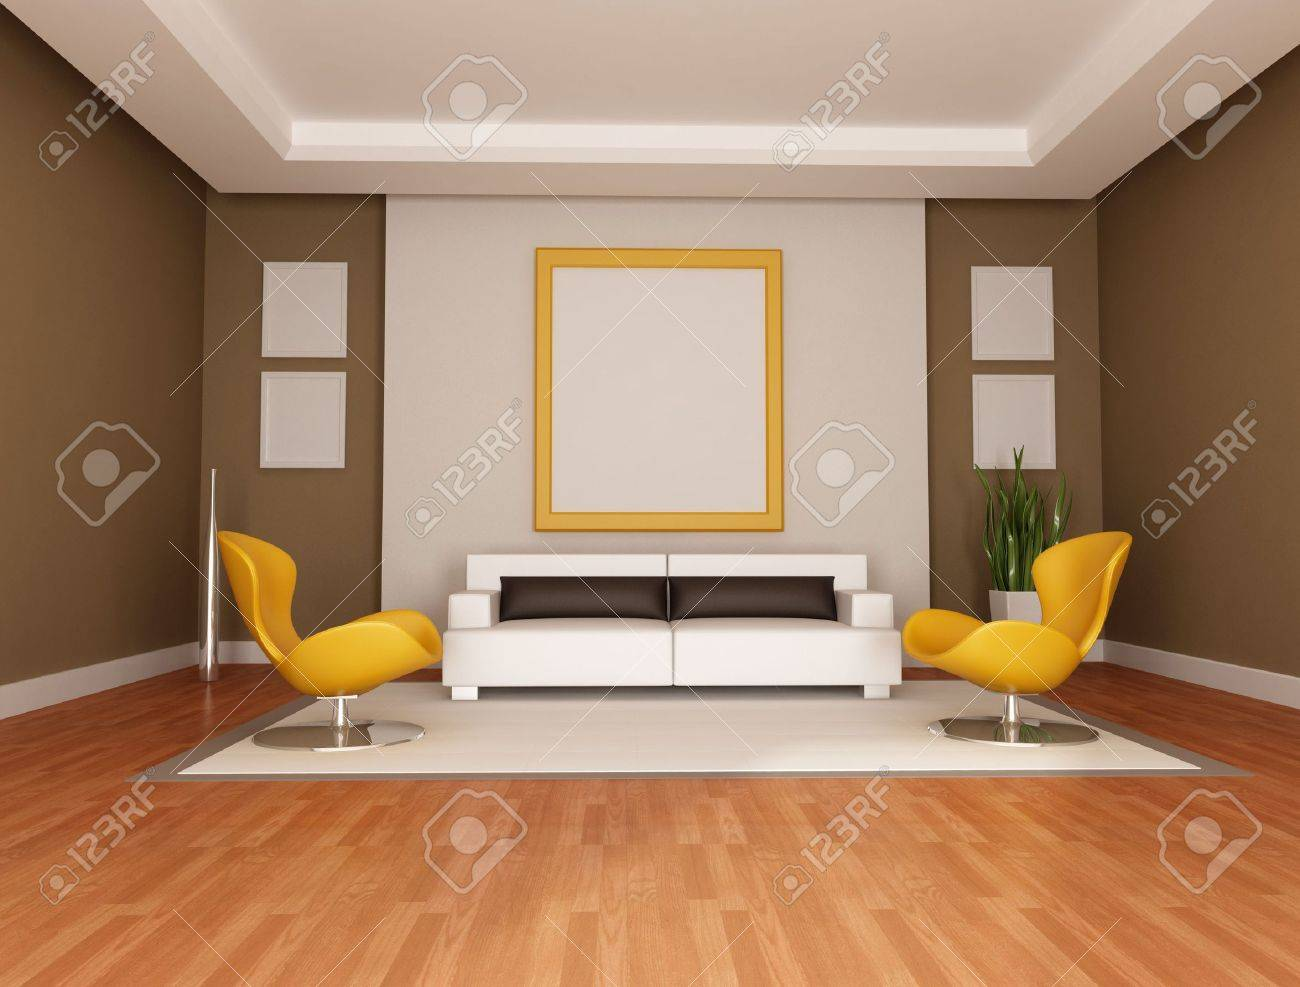 living room with modern couch and two orange armchair - rendering Stock Photo - 6393062